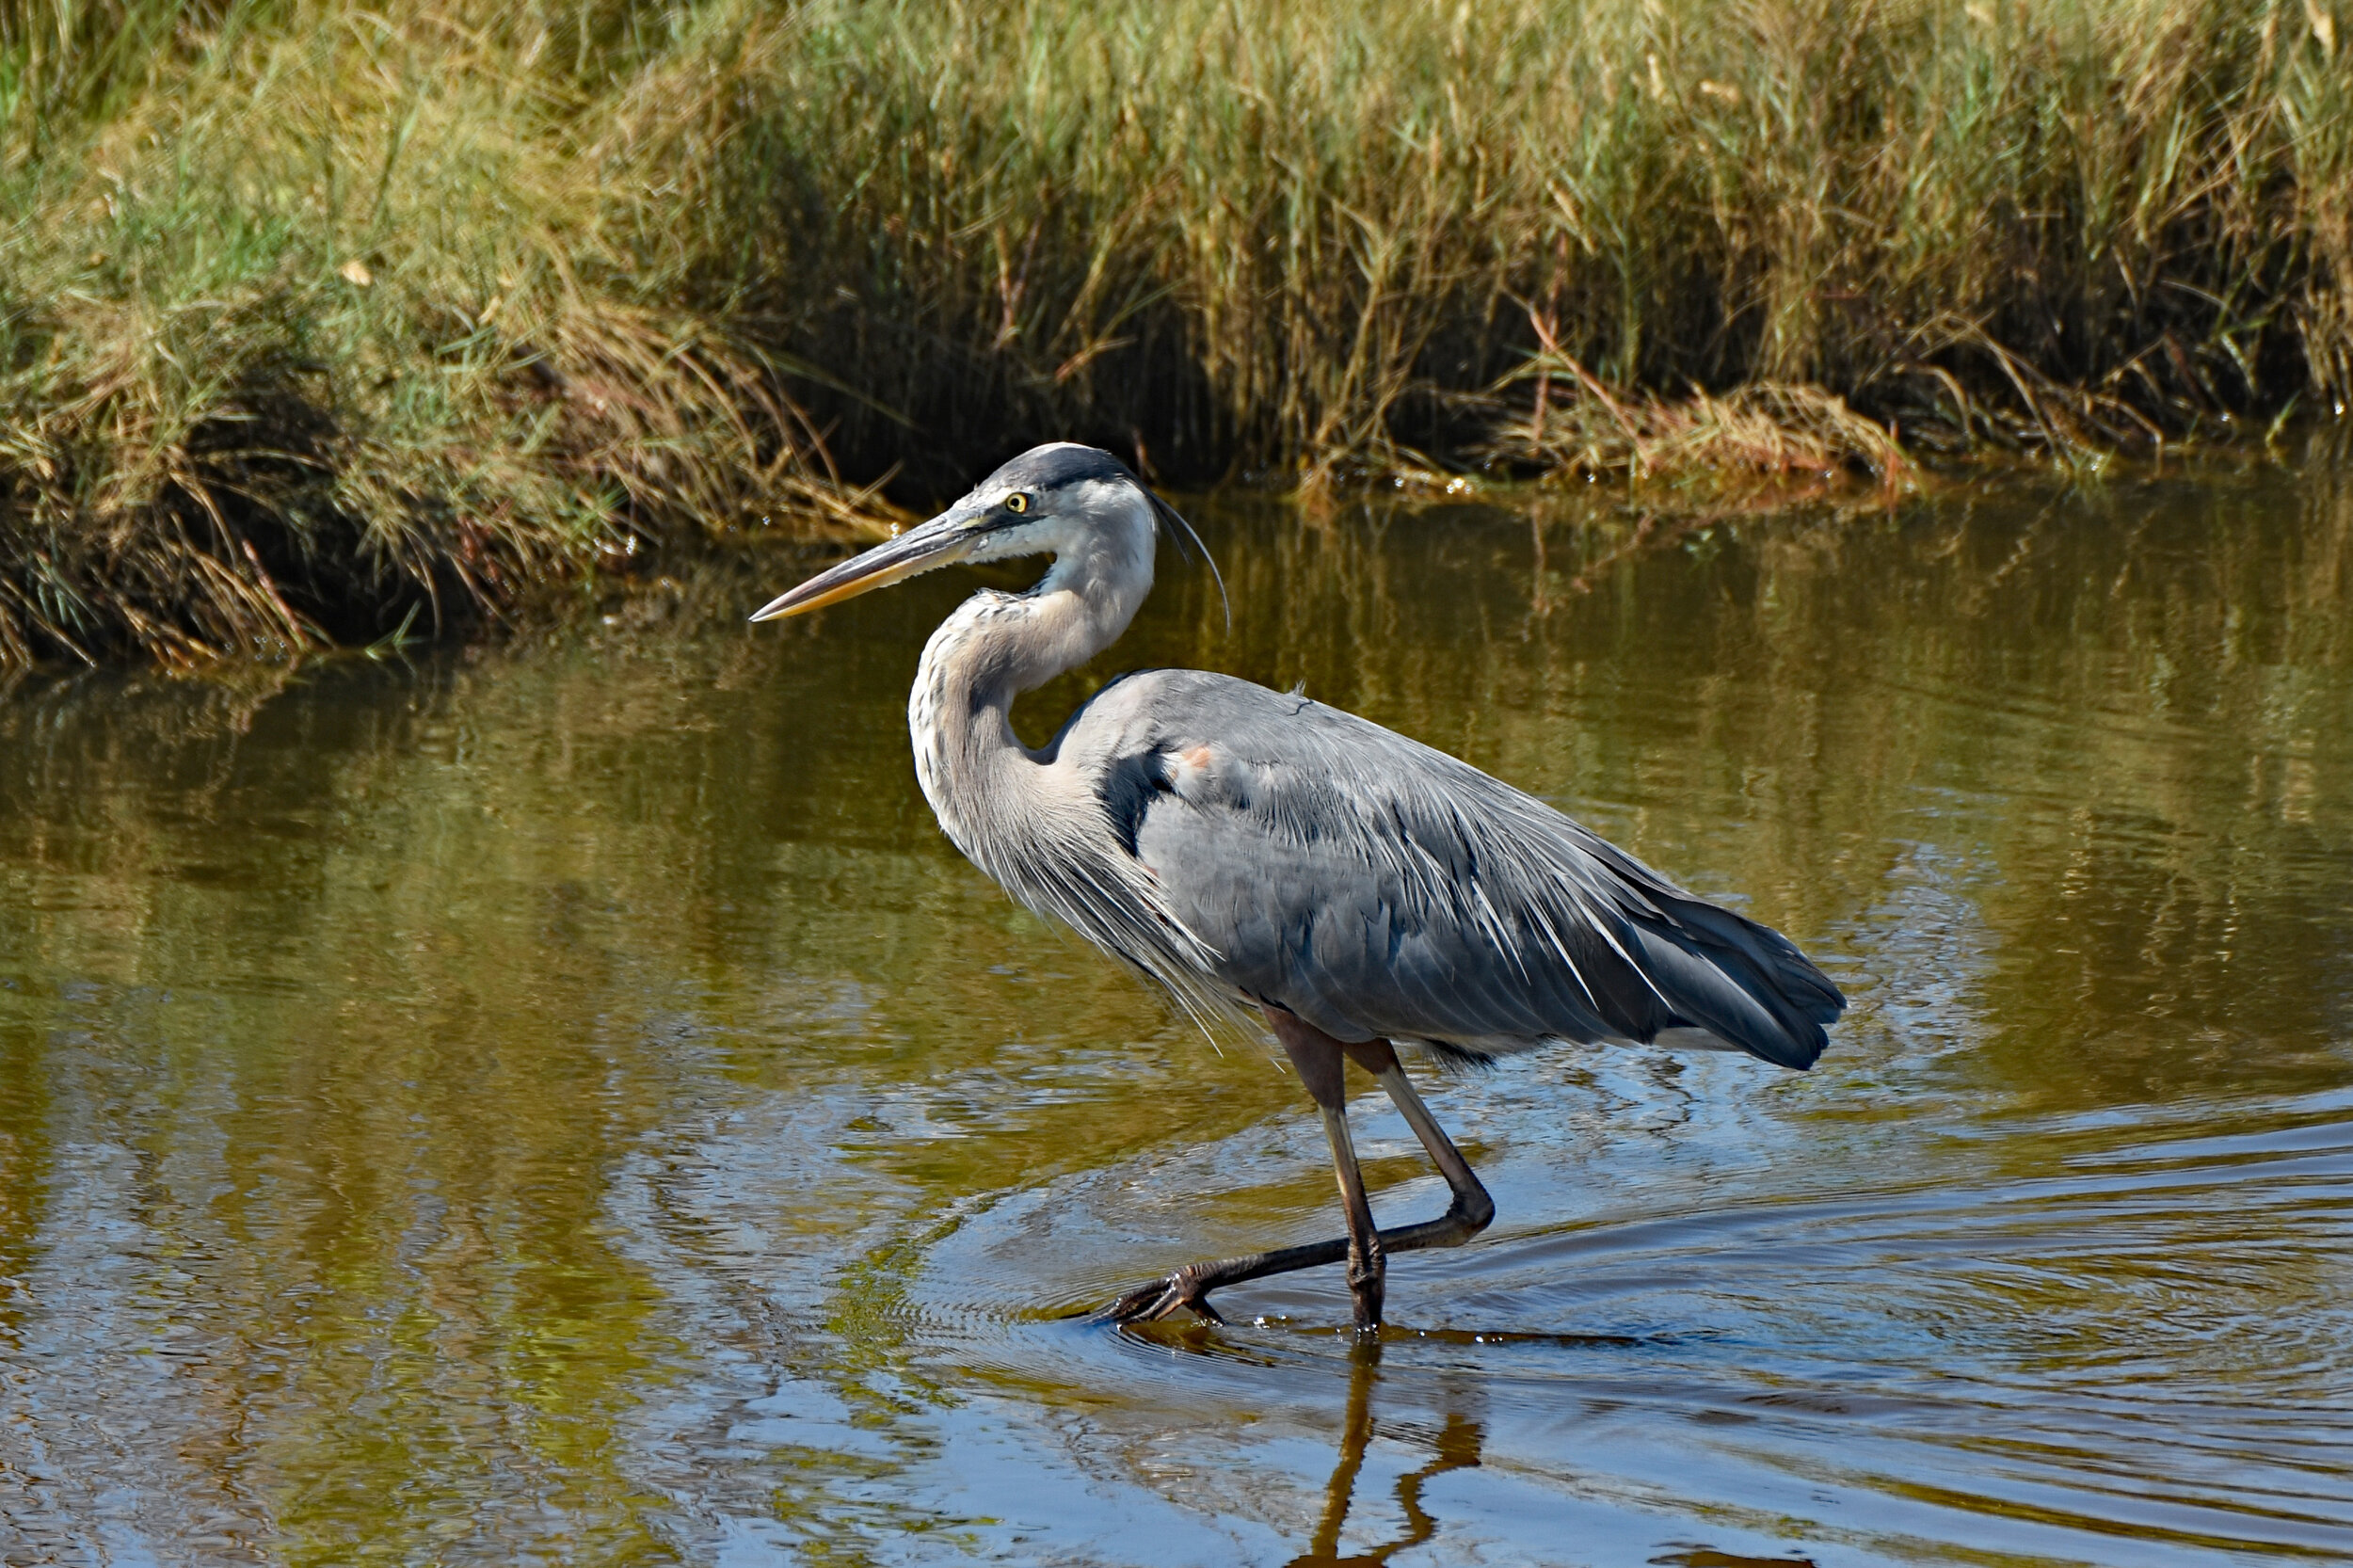 Pam Scrima - Great Blue Heron.jpg